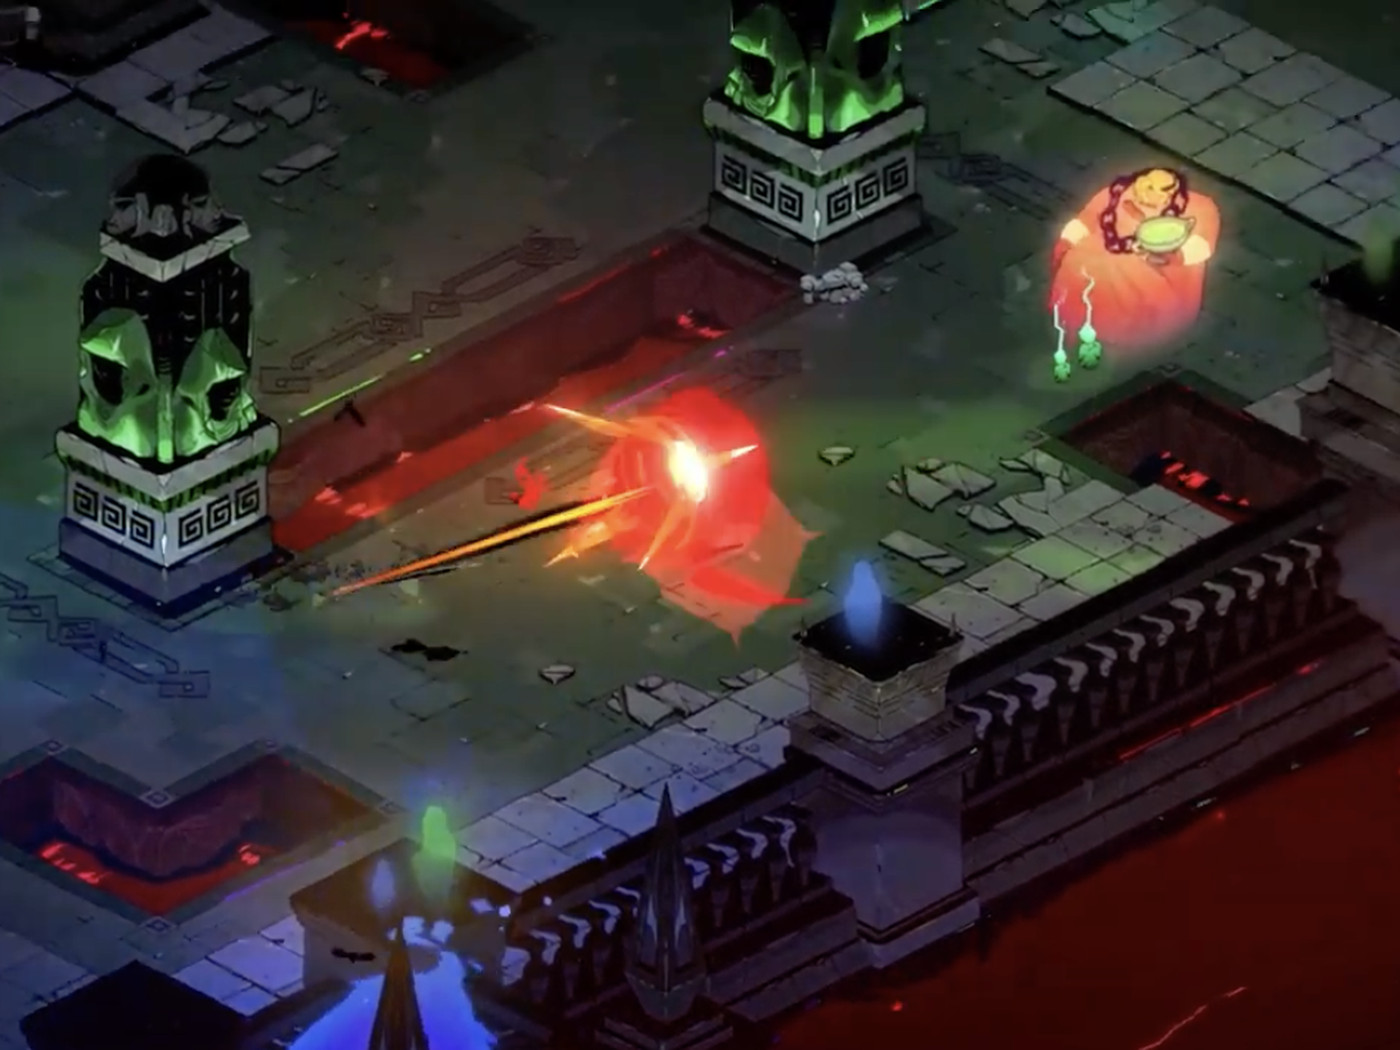 Supergiant Games' new title Hades announced and released in